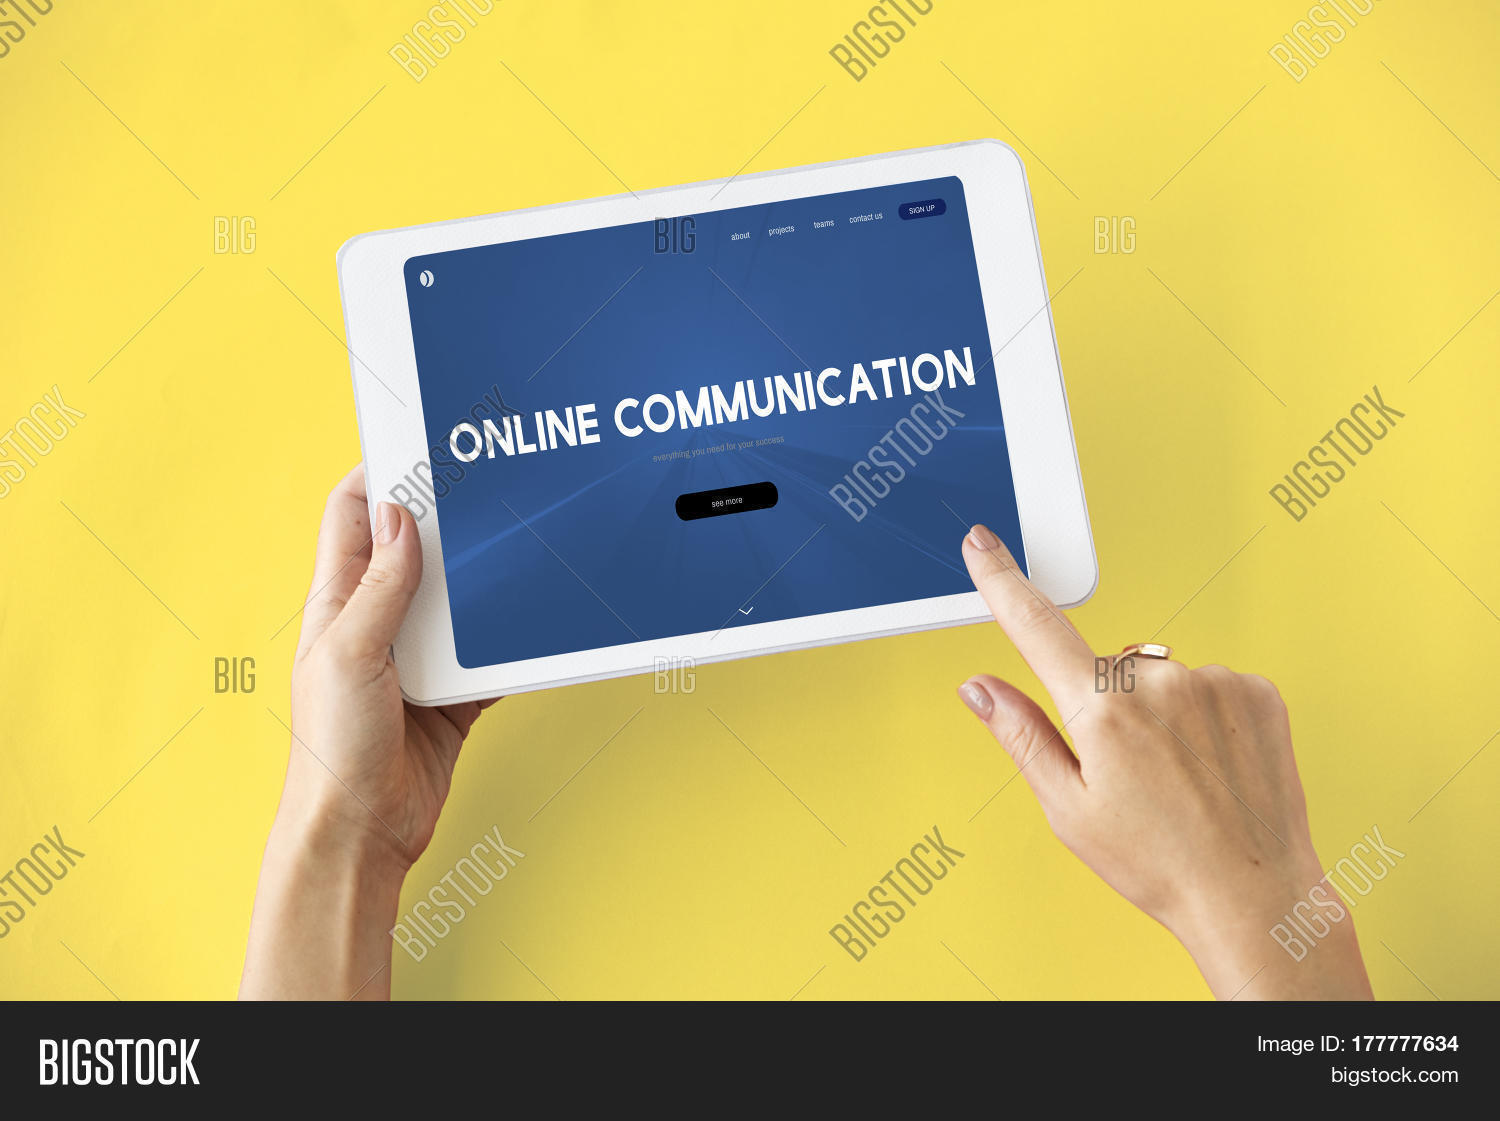 the internet and online communication The role of the internet in business communication is key because it makes communication easier, allows consumers and vendors.